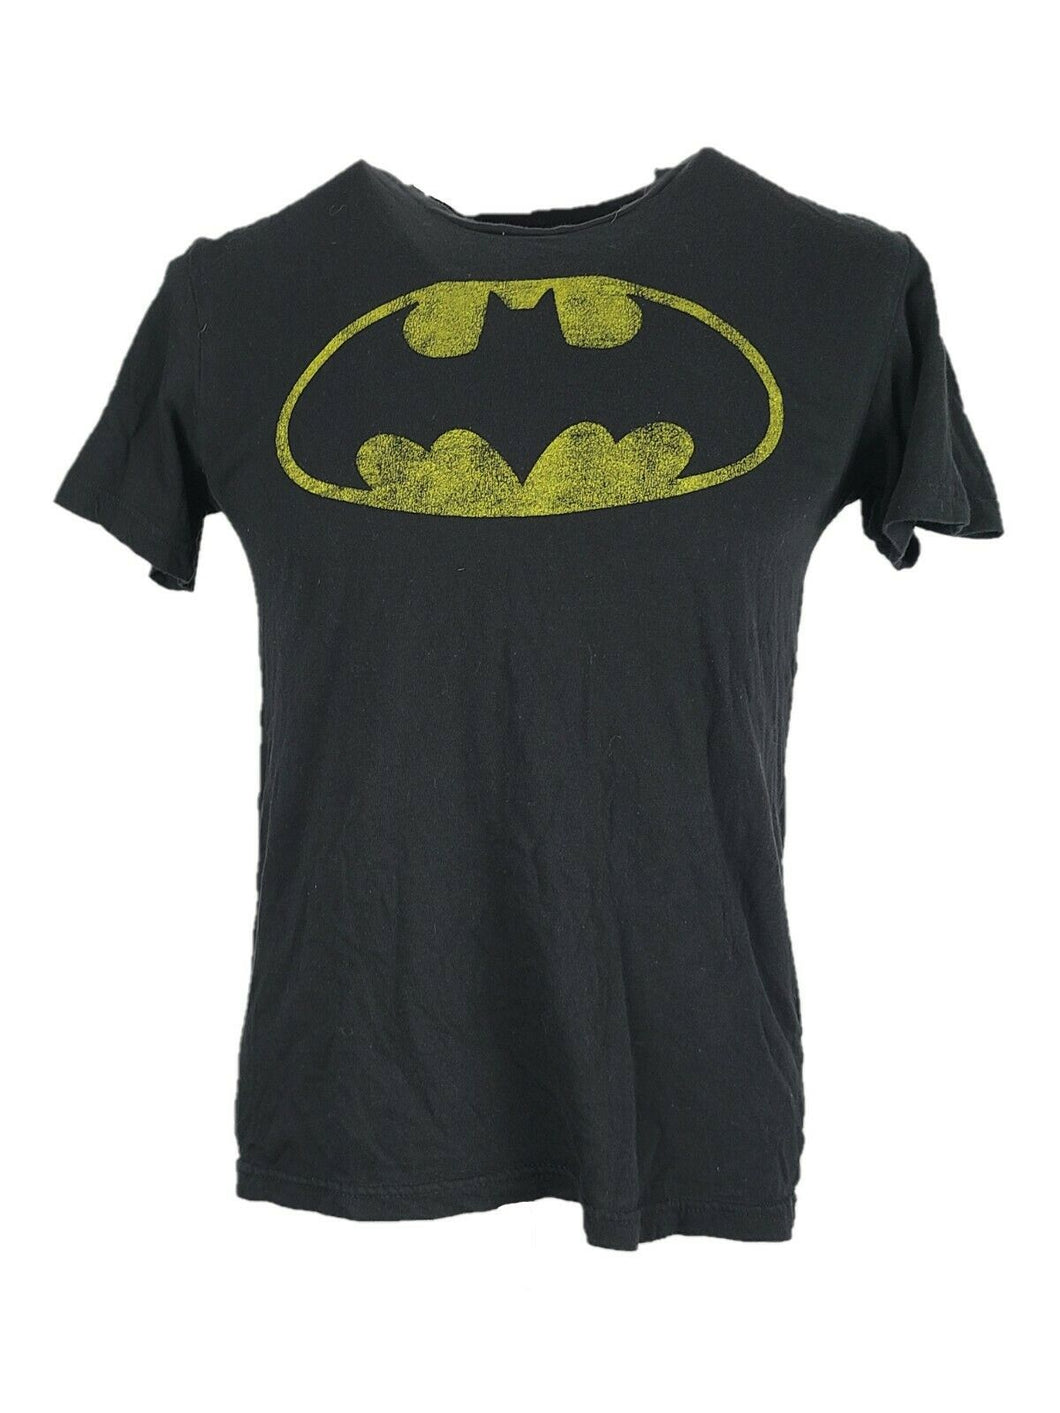 Batman T-Shirt Size M Color Black Graphic Front Good Condition